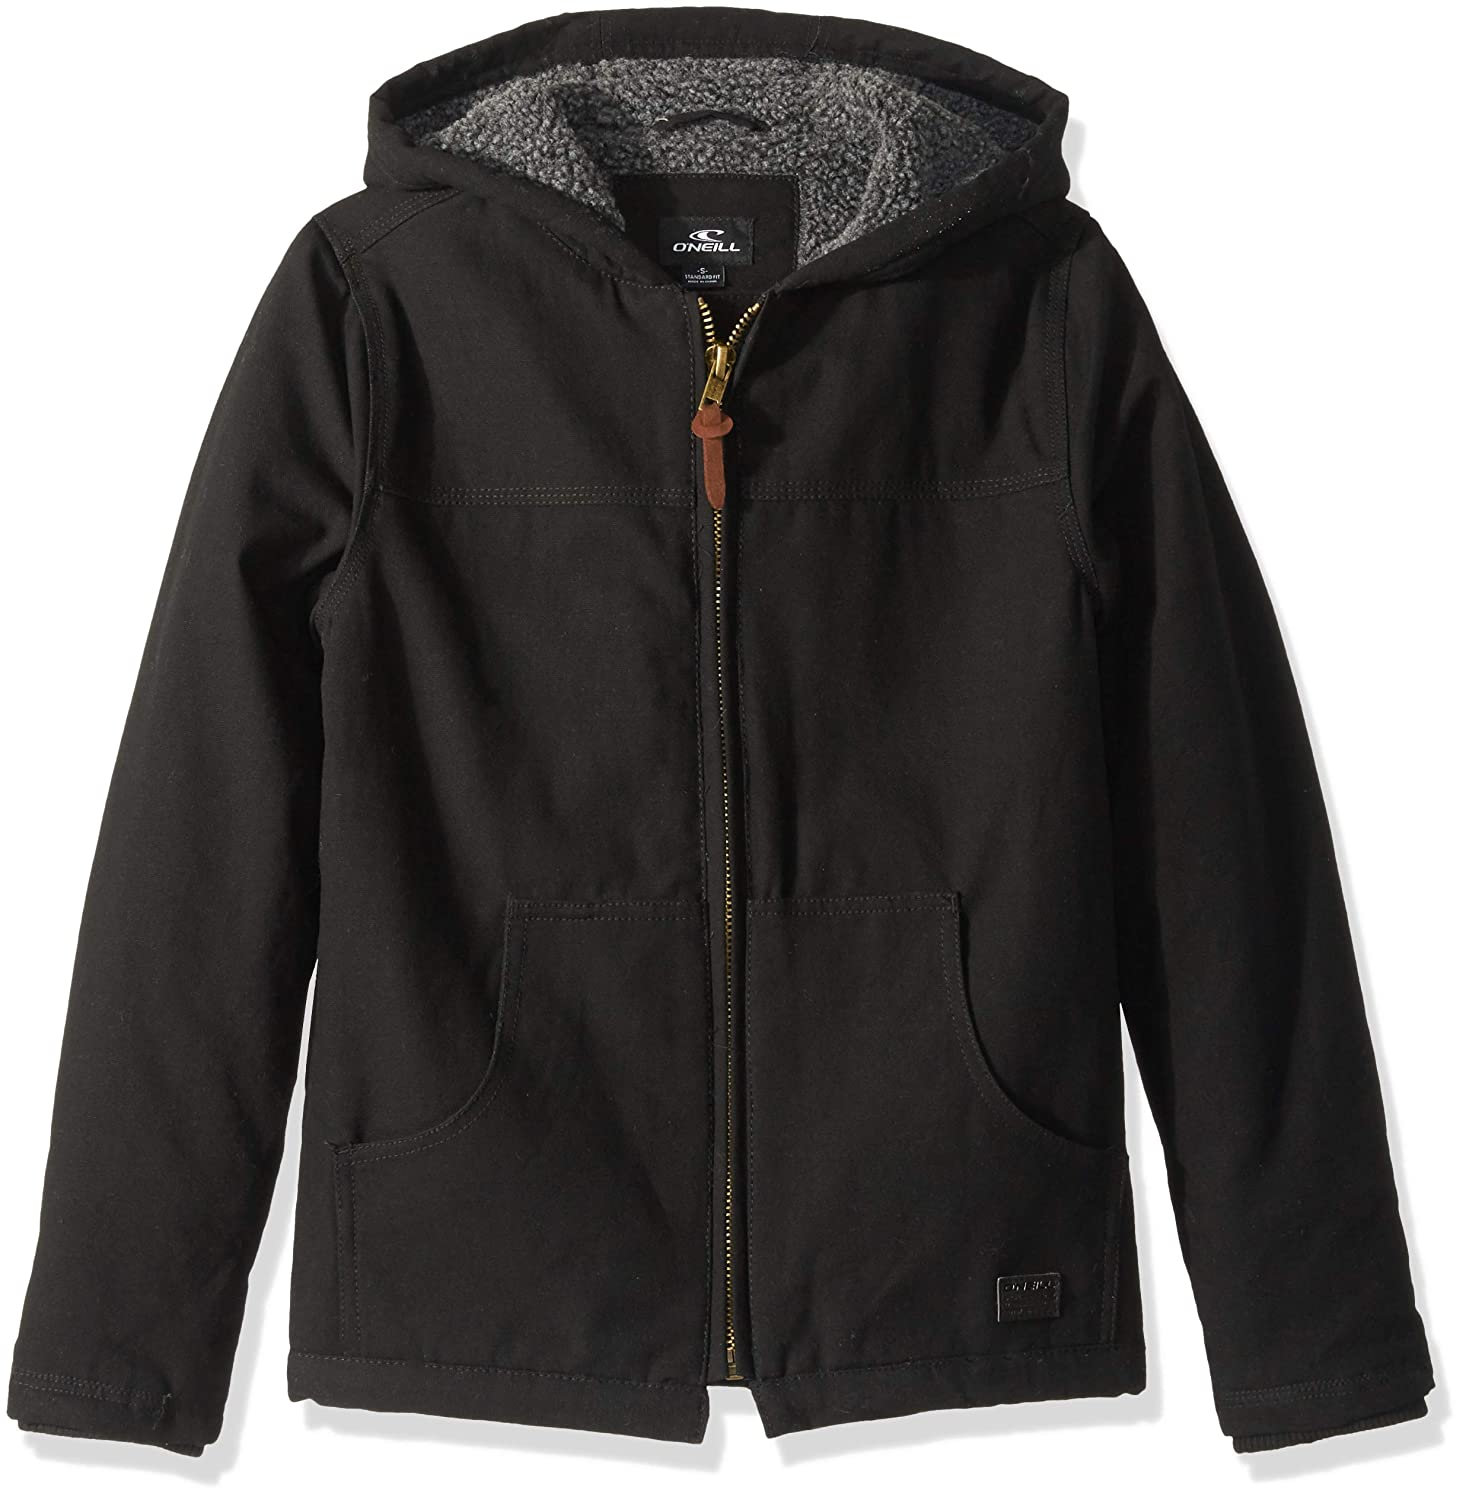 O'Neill OUTERWEAR ボーイズ